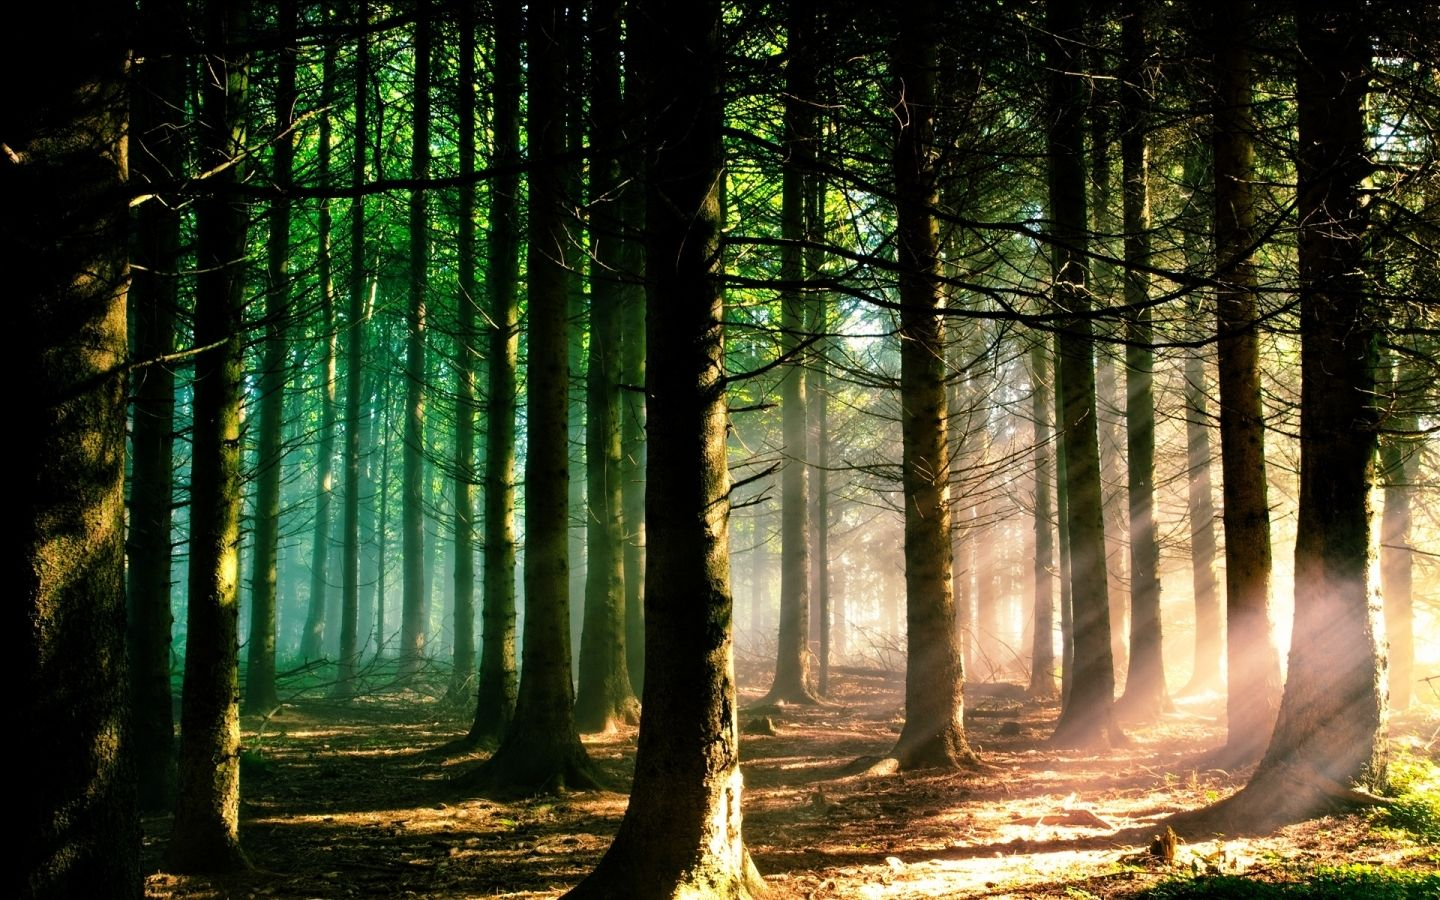 Must see Wallpaper Macbook Forest - 3e2842f6b27093668734d3ef90fbad45  Pic_955222.jpg